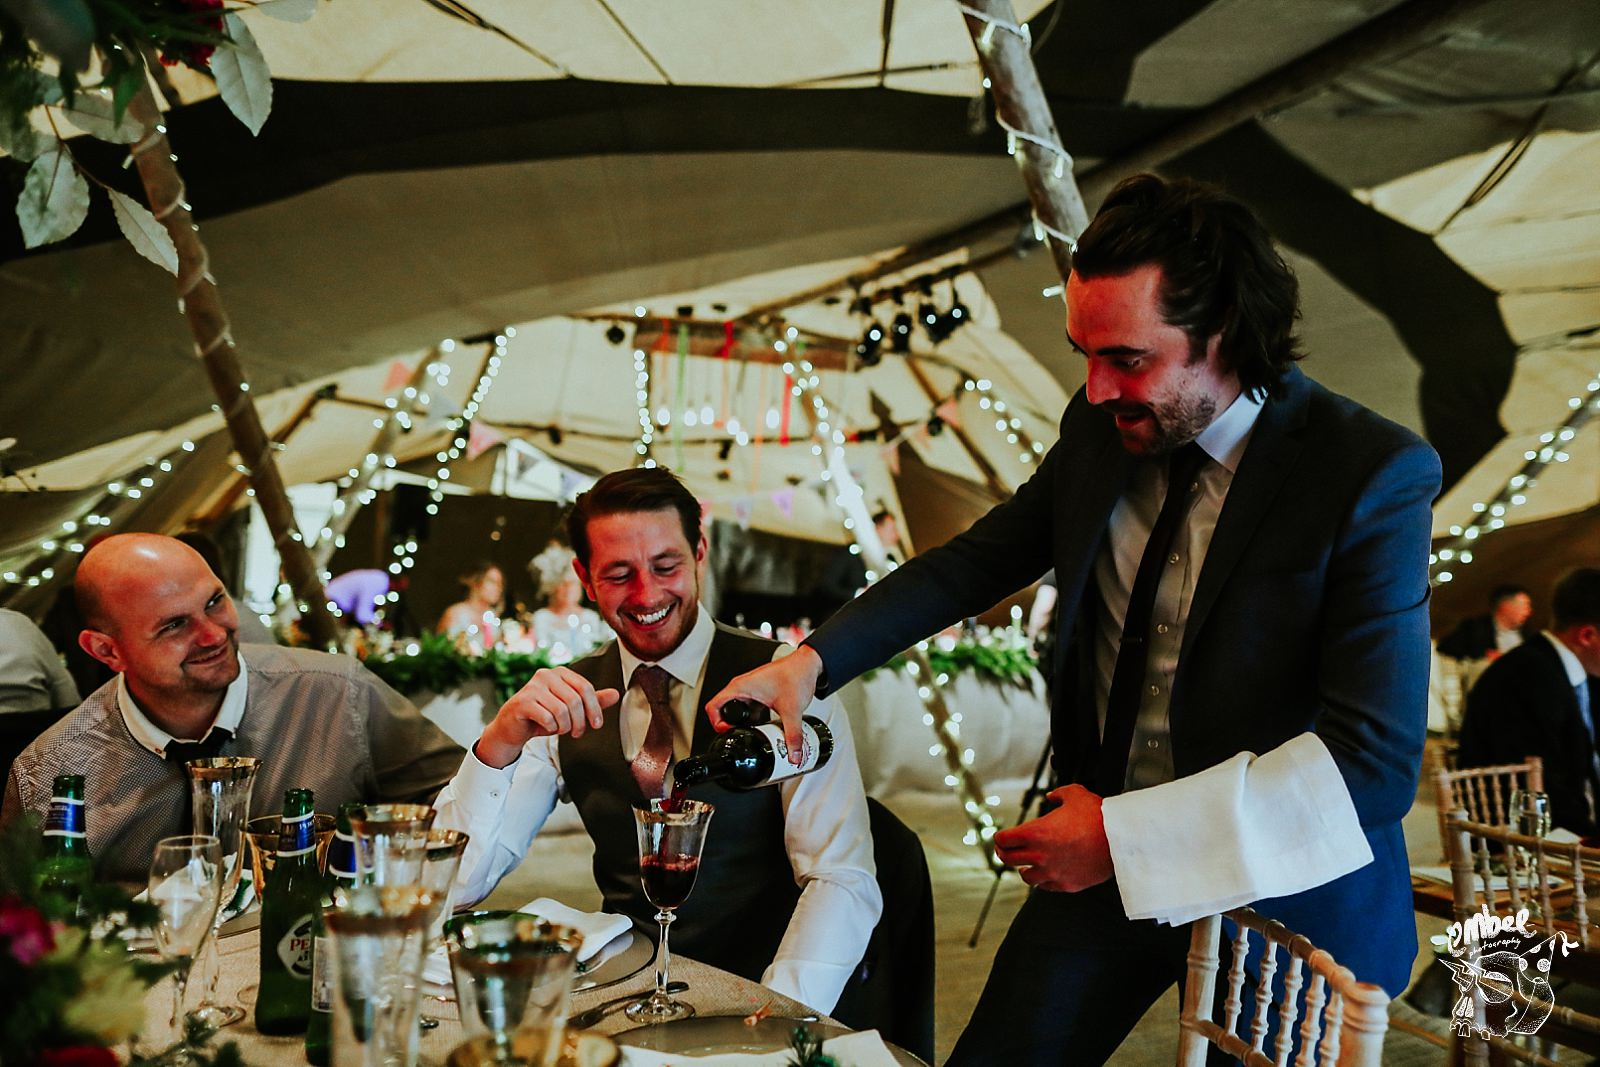 guest acting funny pouring peoples drinks at wedding